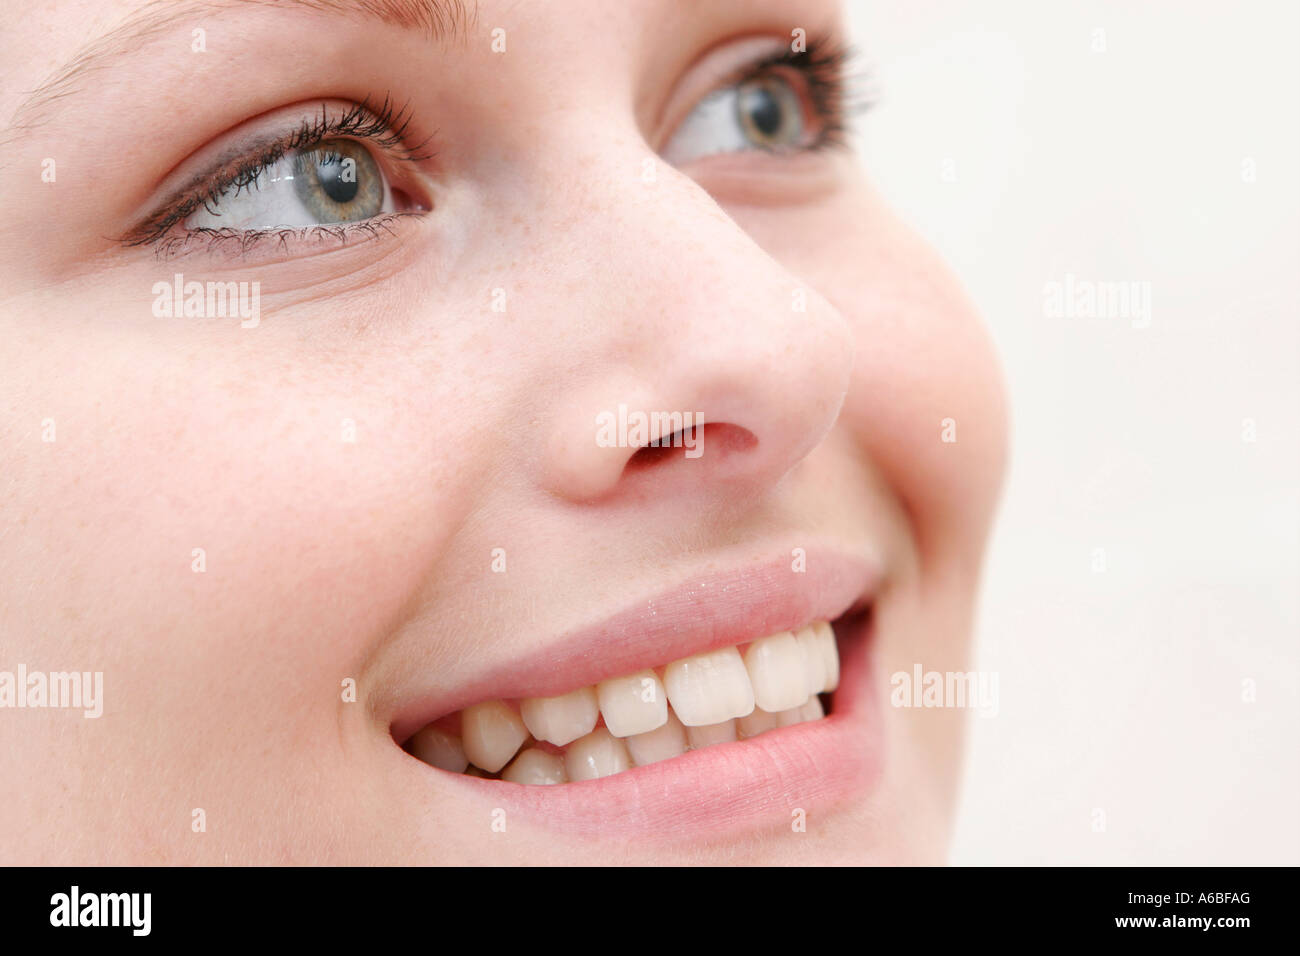 woman smiling in close up, teeth showing Stock Photo